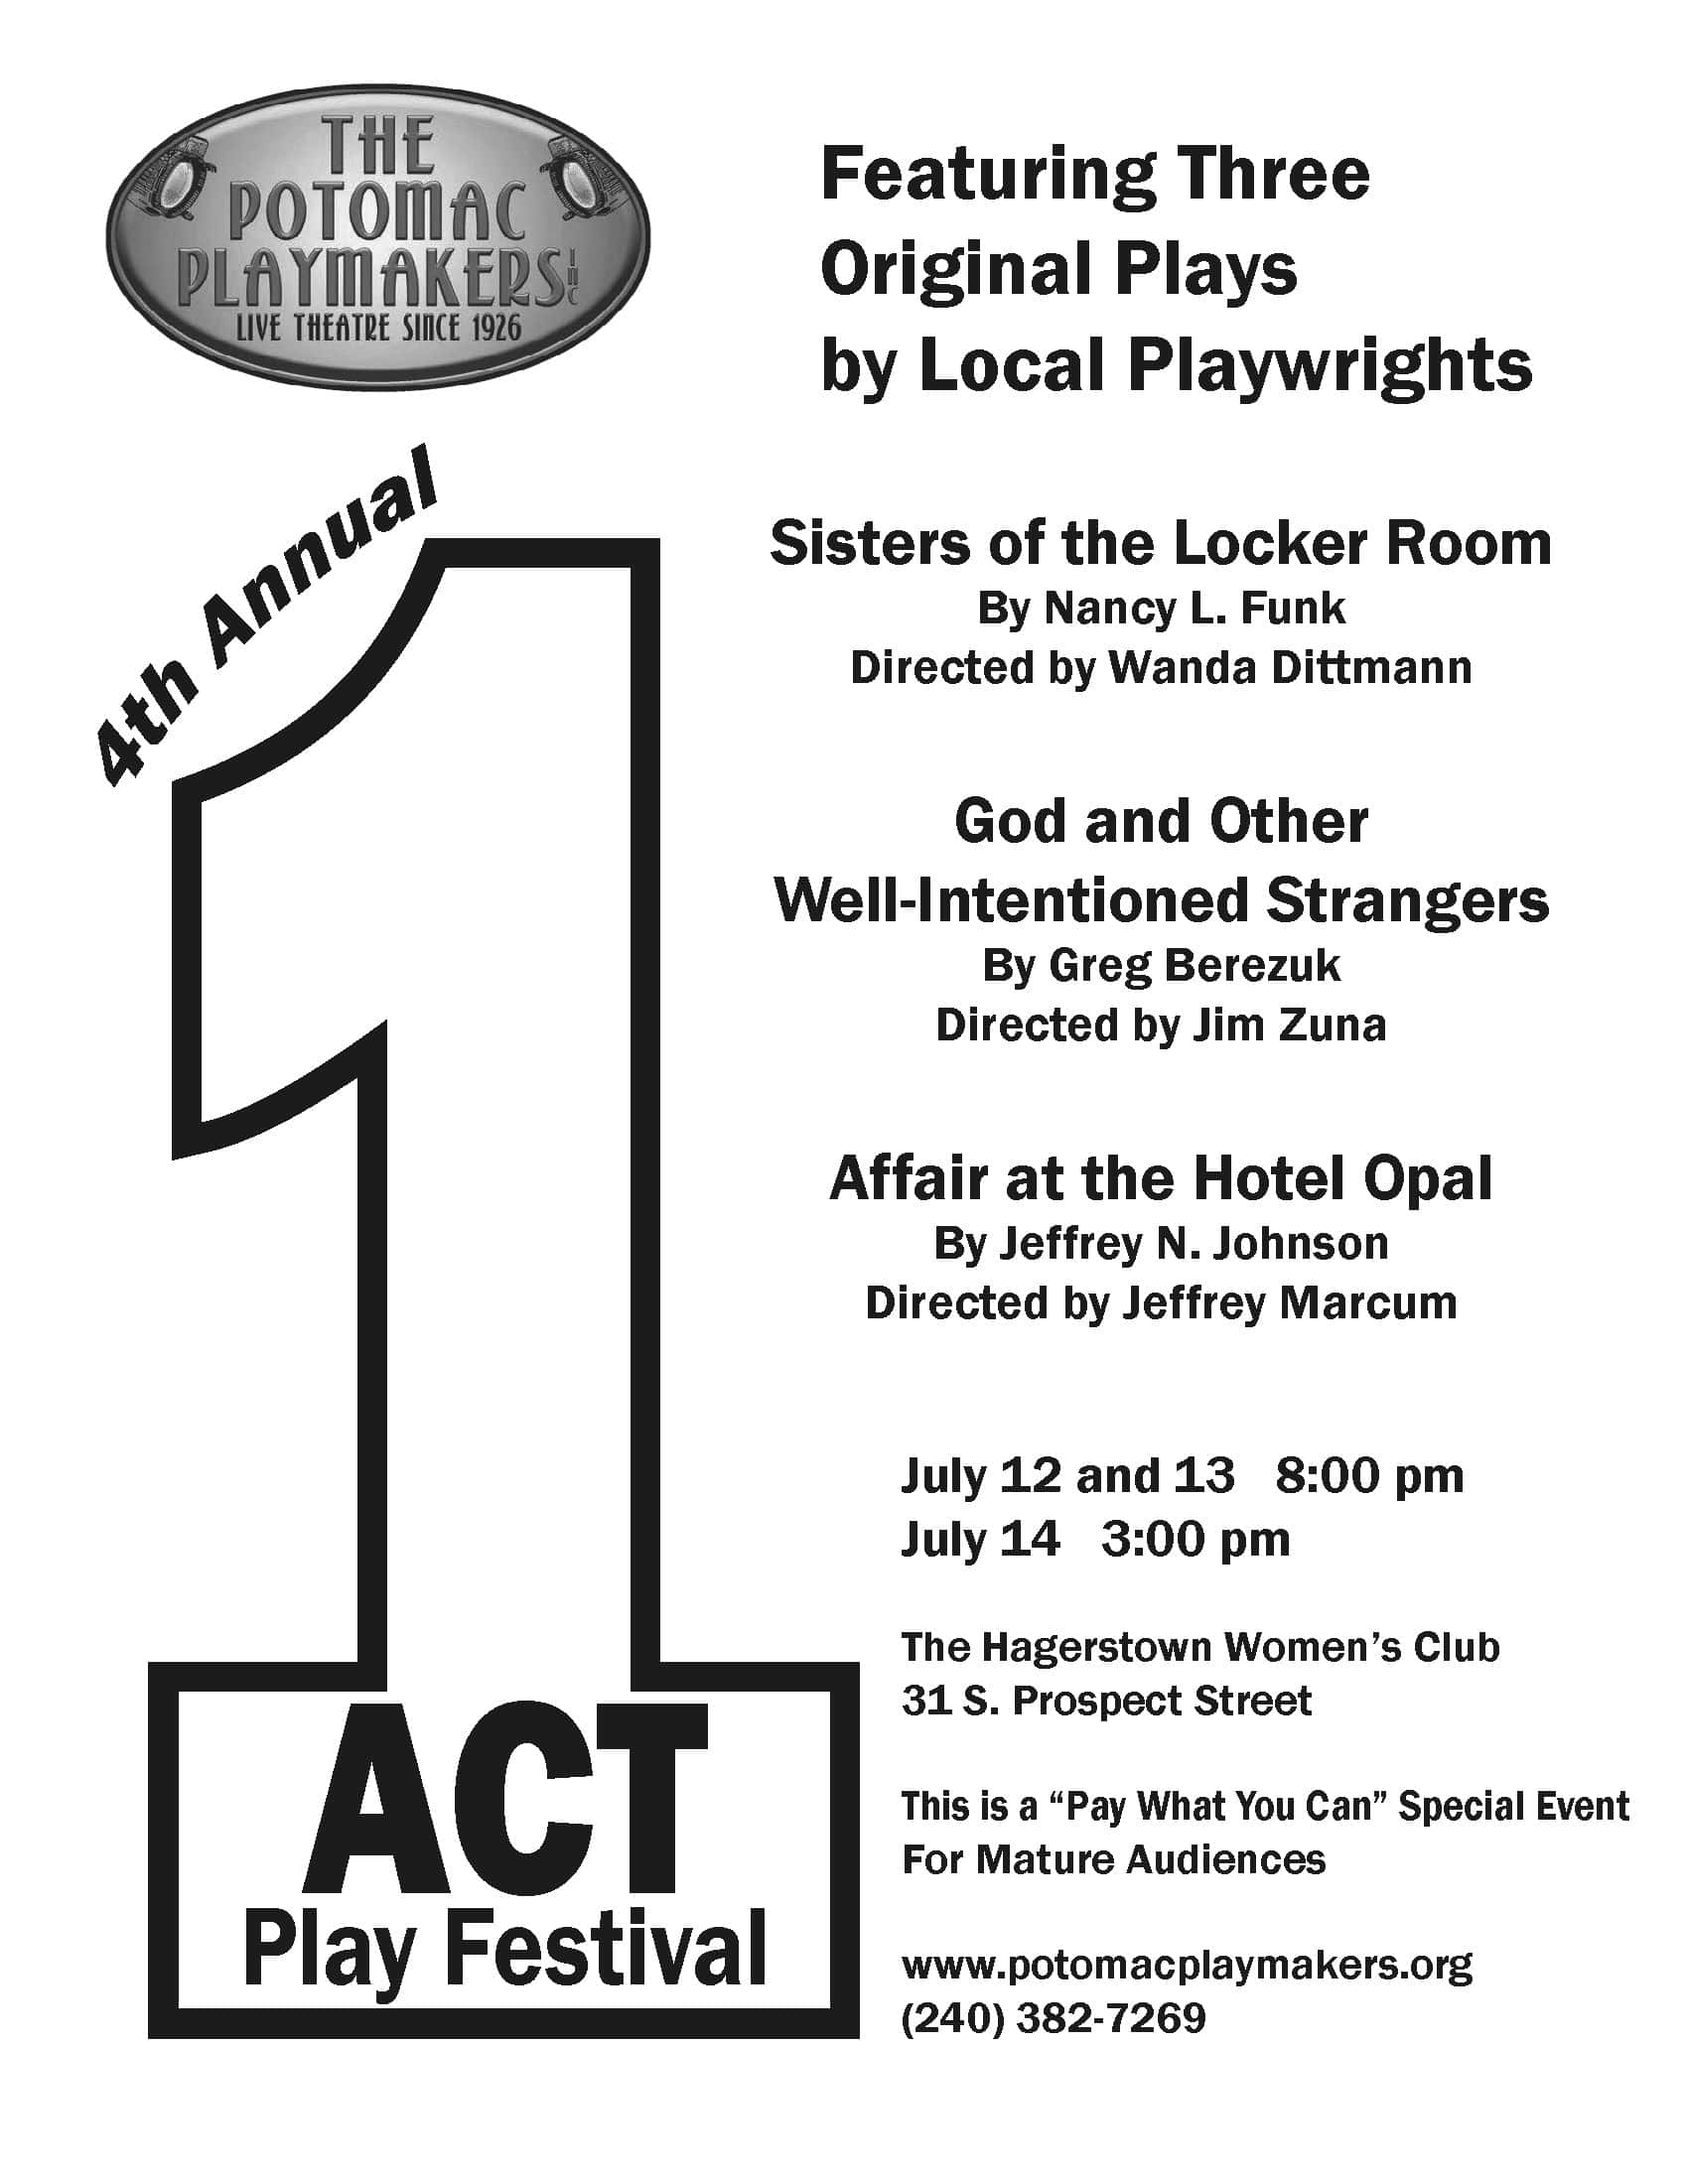 Potomac Playmakers Fourth Annual One-Act Play Festival